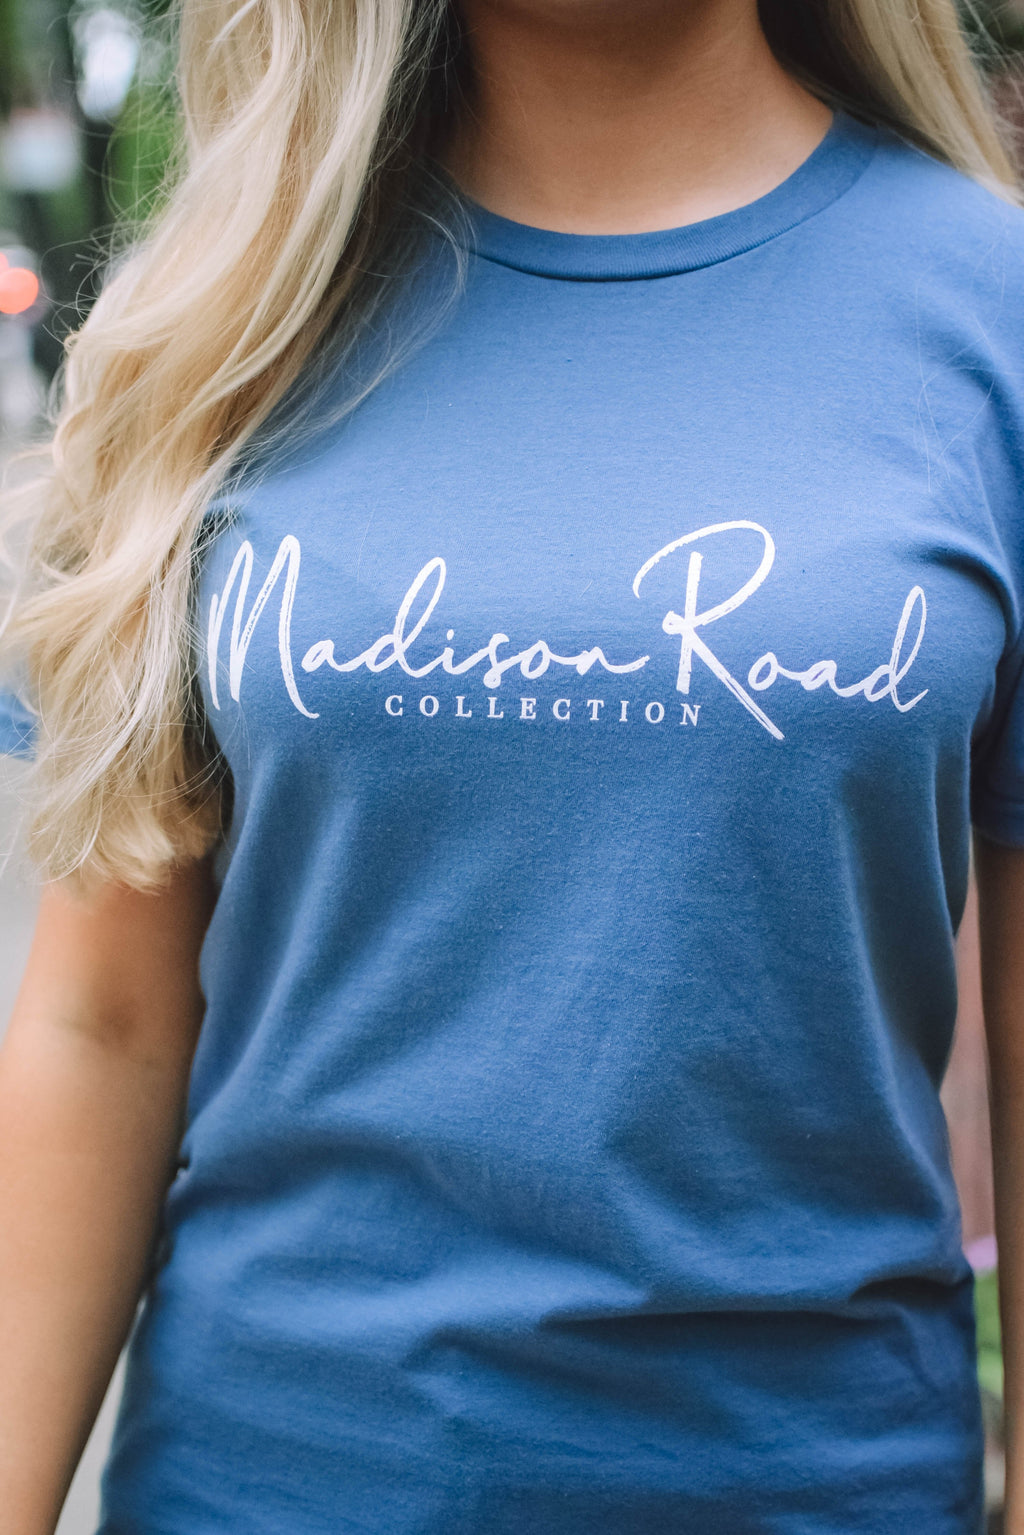 Madison Road Collection T-Shirt - Mint Pop Shop